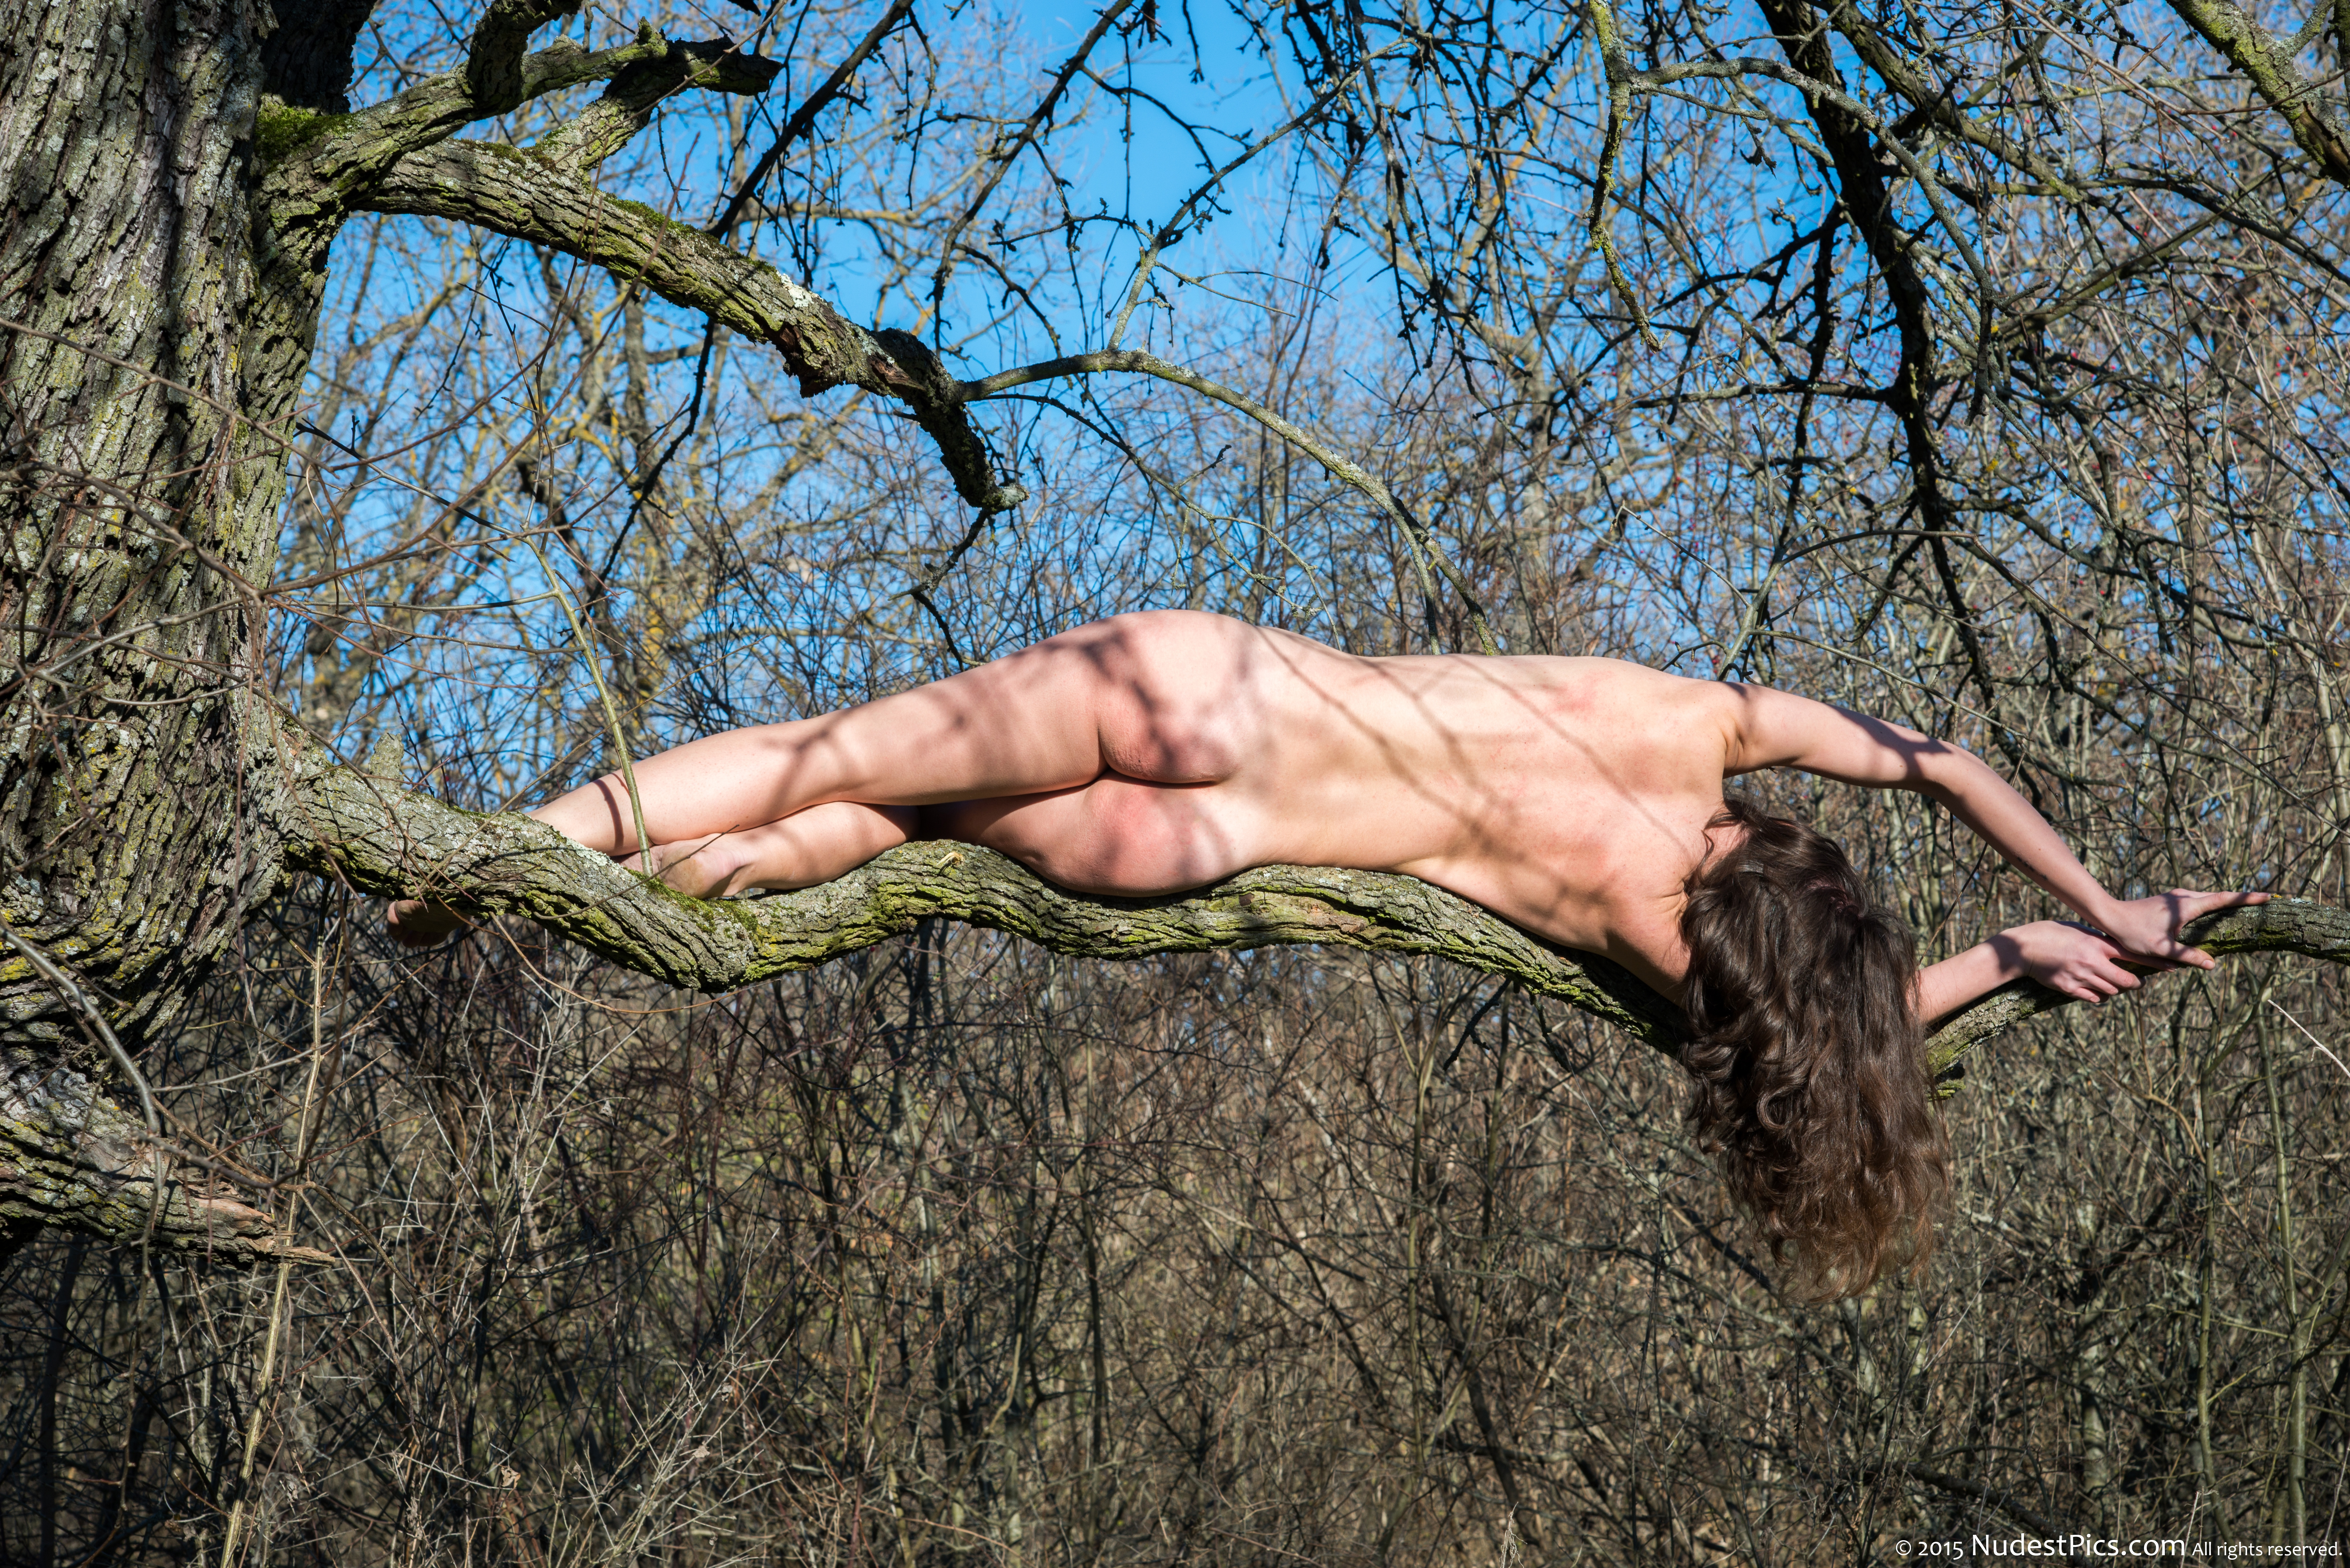 Nudist Girl Sunbathing on a Branch from Behind